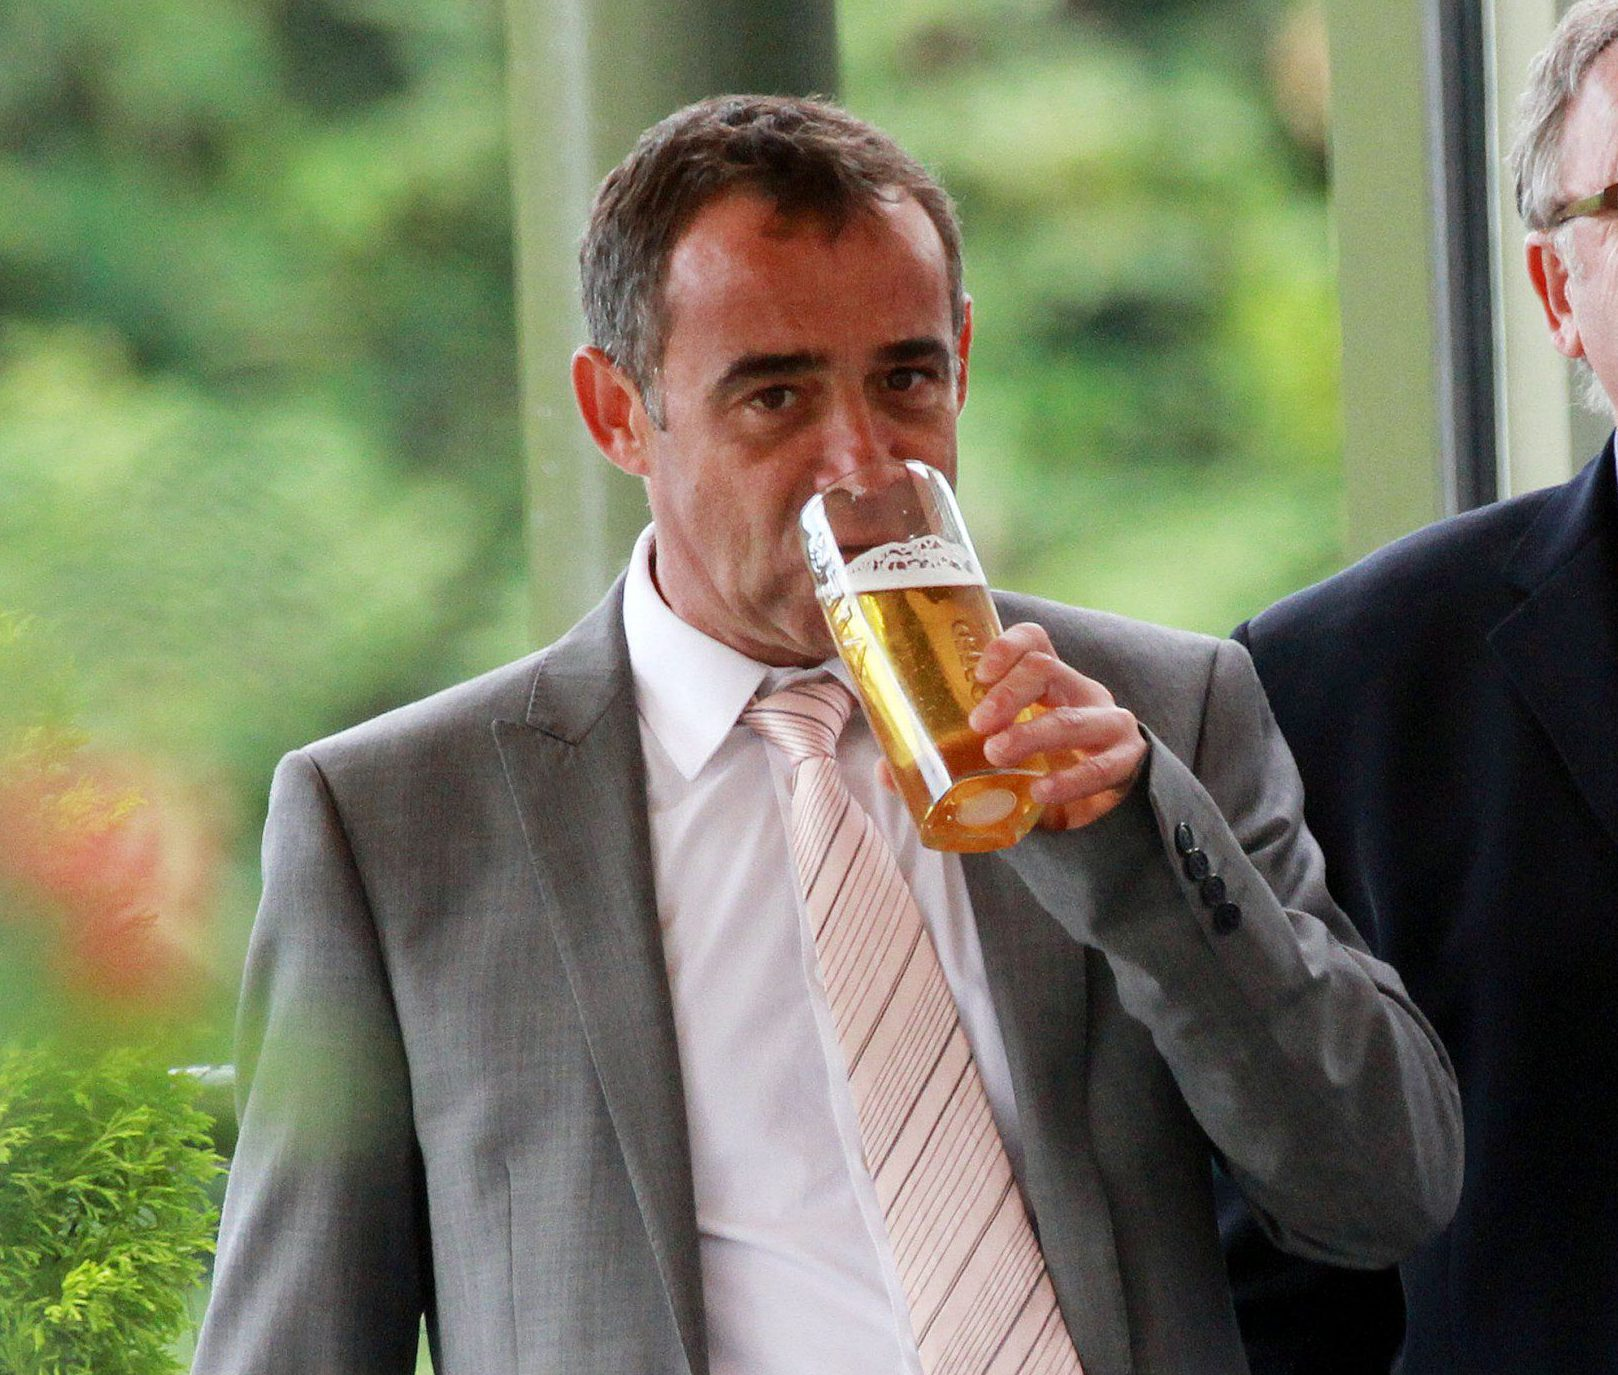 Michael Le Vell drinks 'most weekdays' despite previously being treated for alcoholism